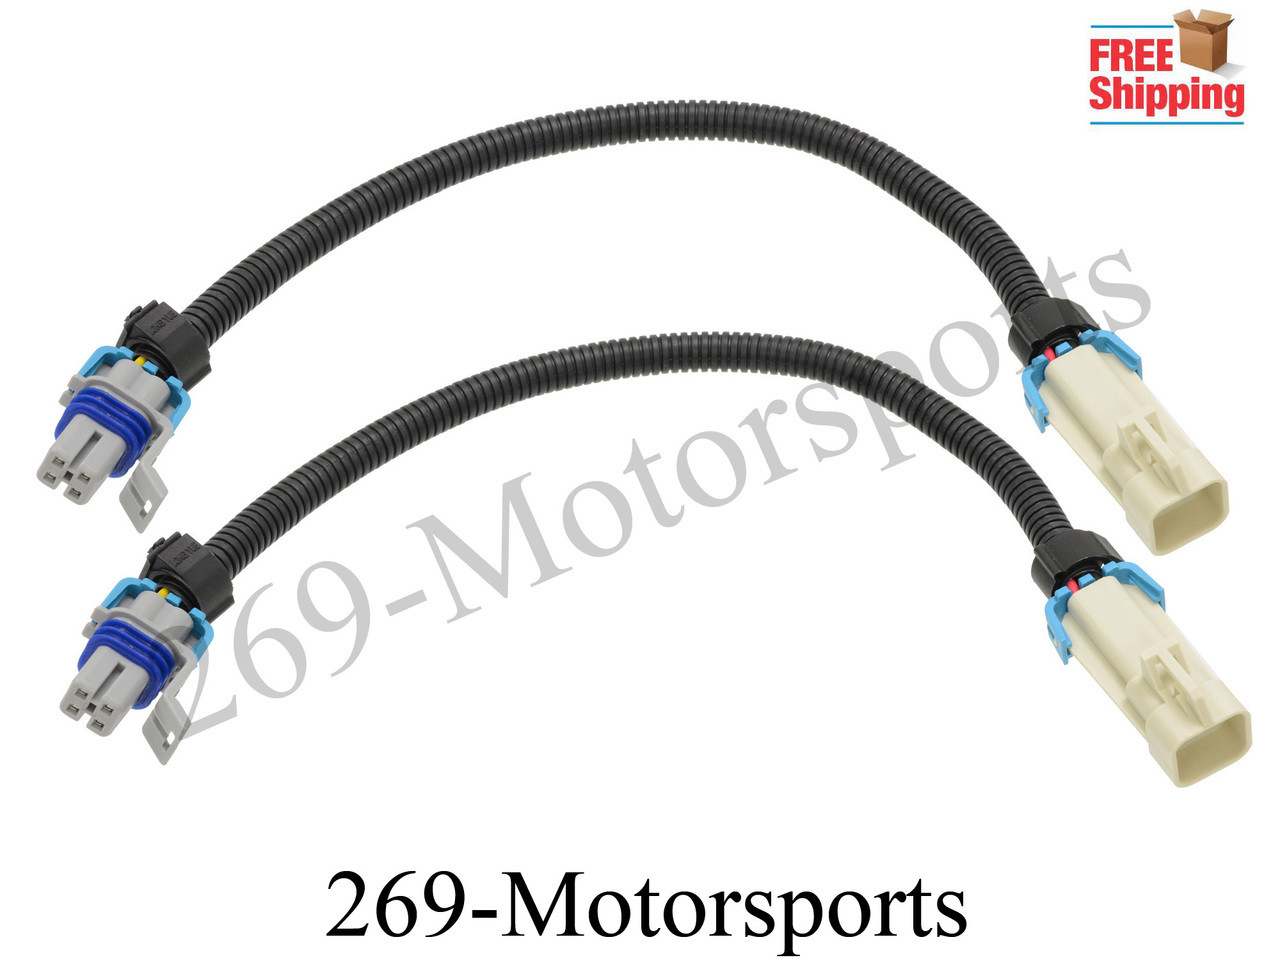 hight resolution of o2 oxygen sensor header extension wire harness fits ls1 ls2 04 06 gto cts v 12